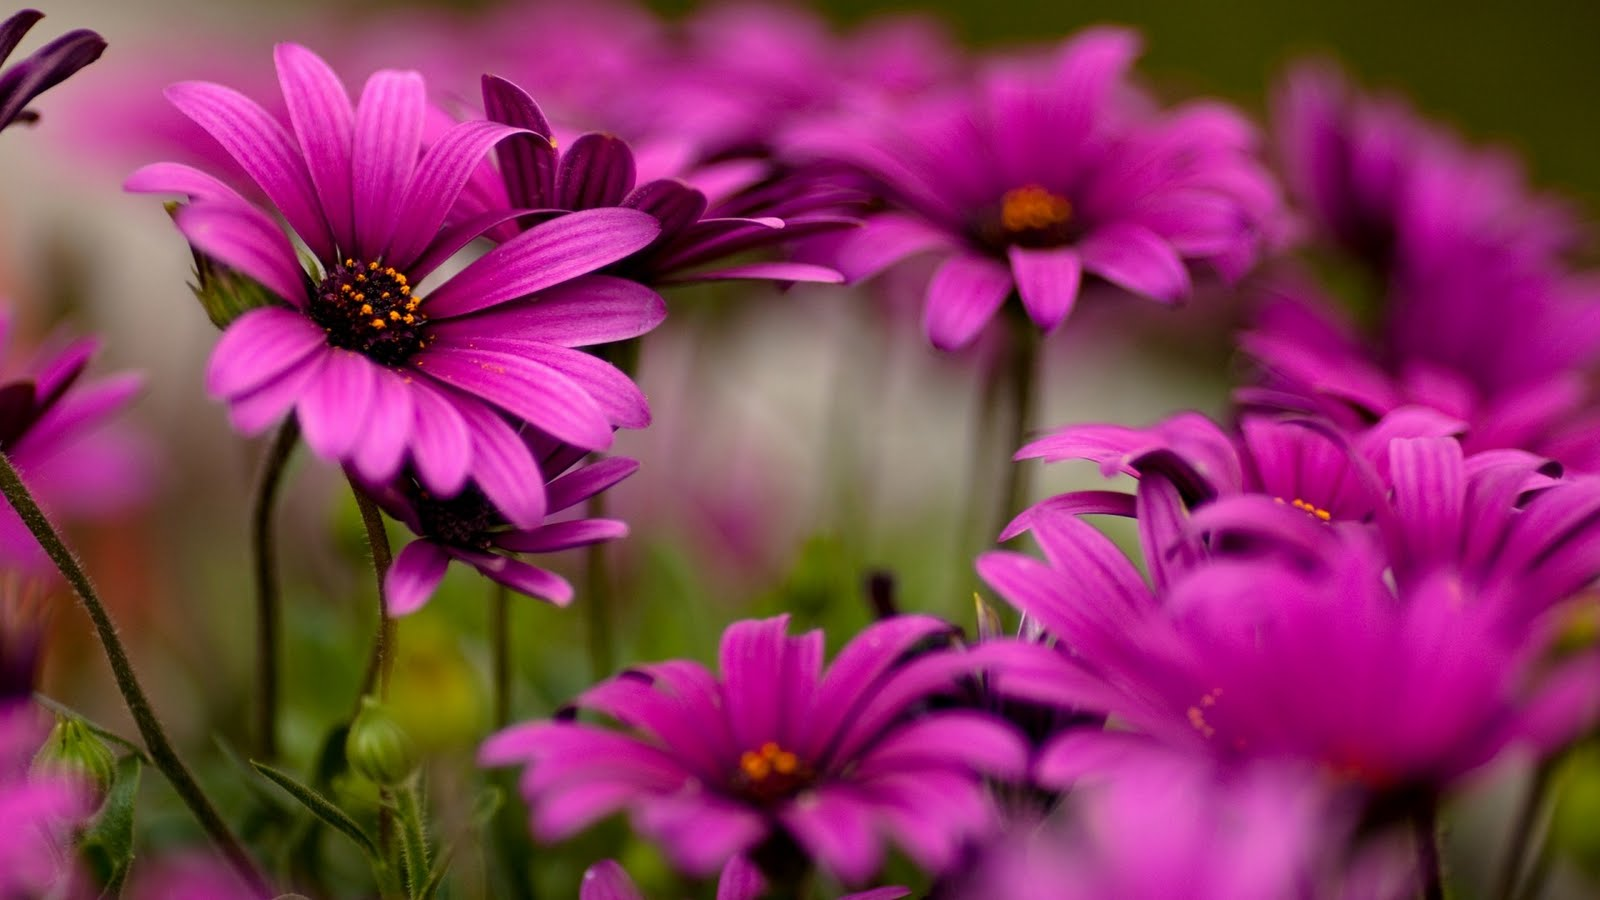 Hd Pictures Of Flowers HD Flowers hot